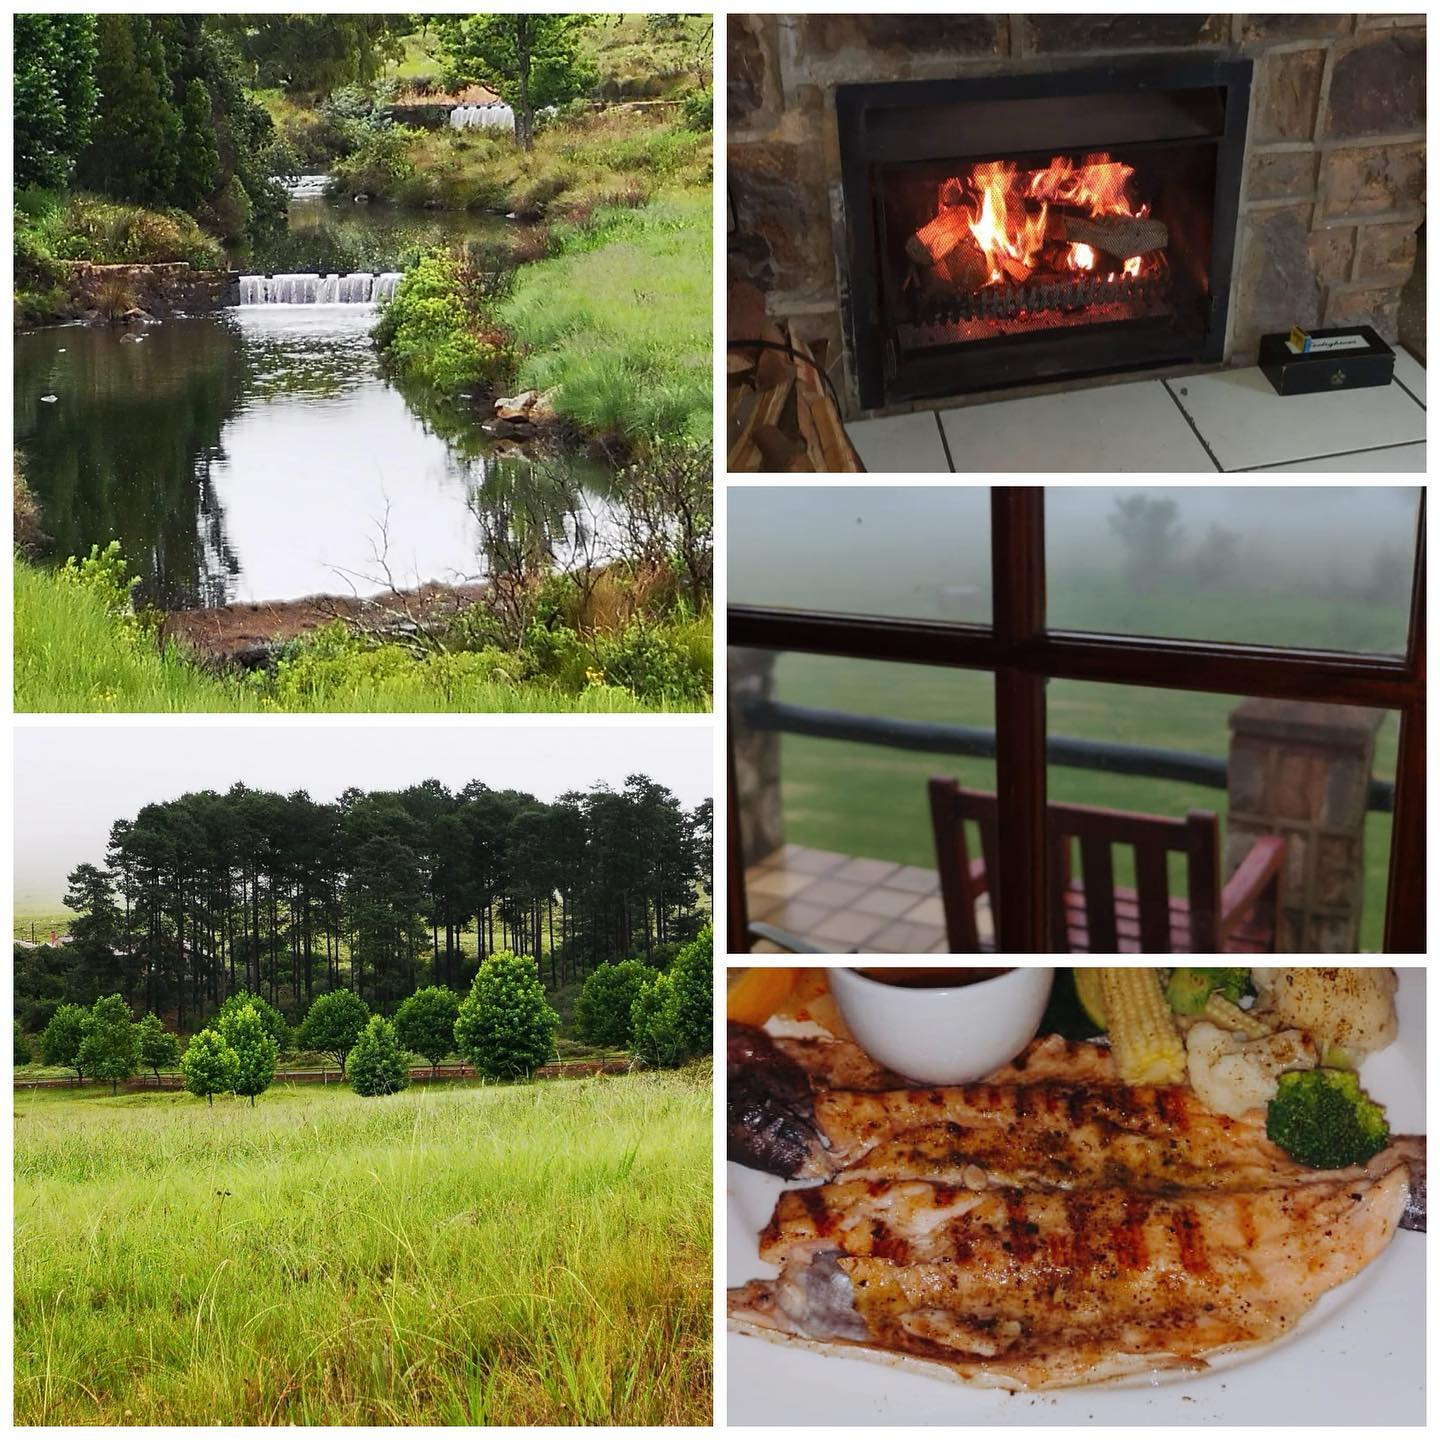 @walkersonshotel in Dullstroom,Mpumalanga. Then specially prepared Trout at the hotel for Dinner ️